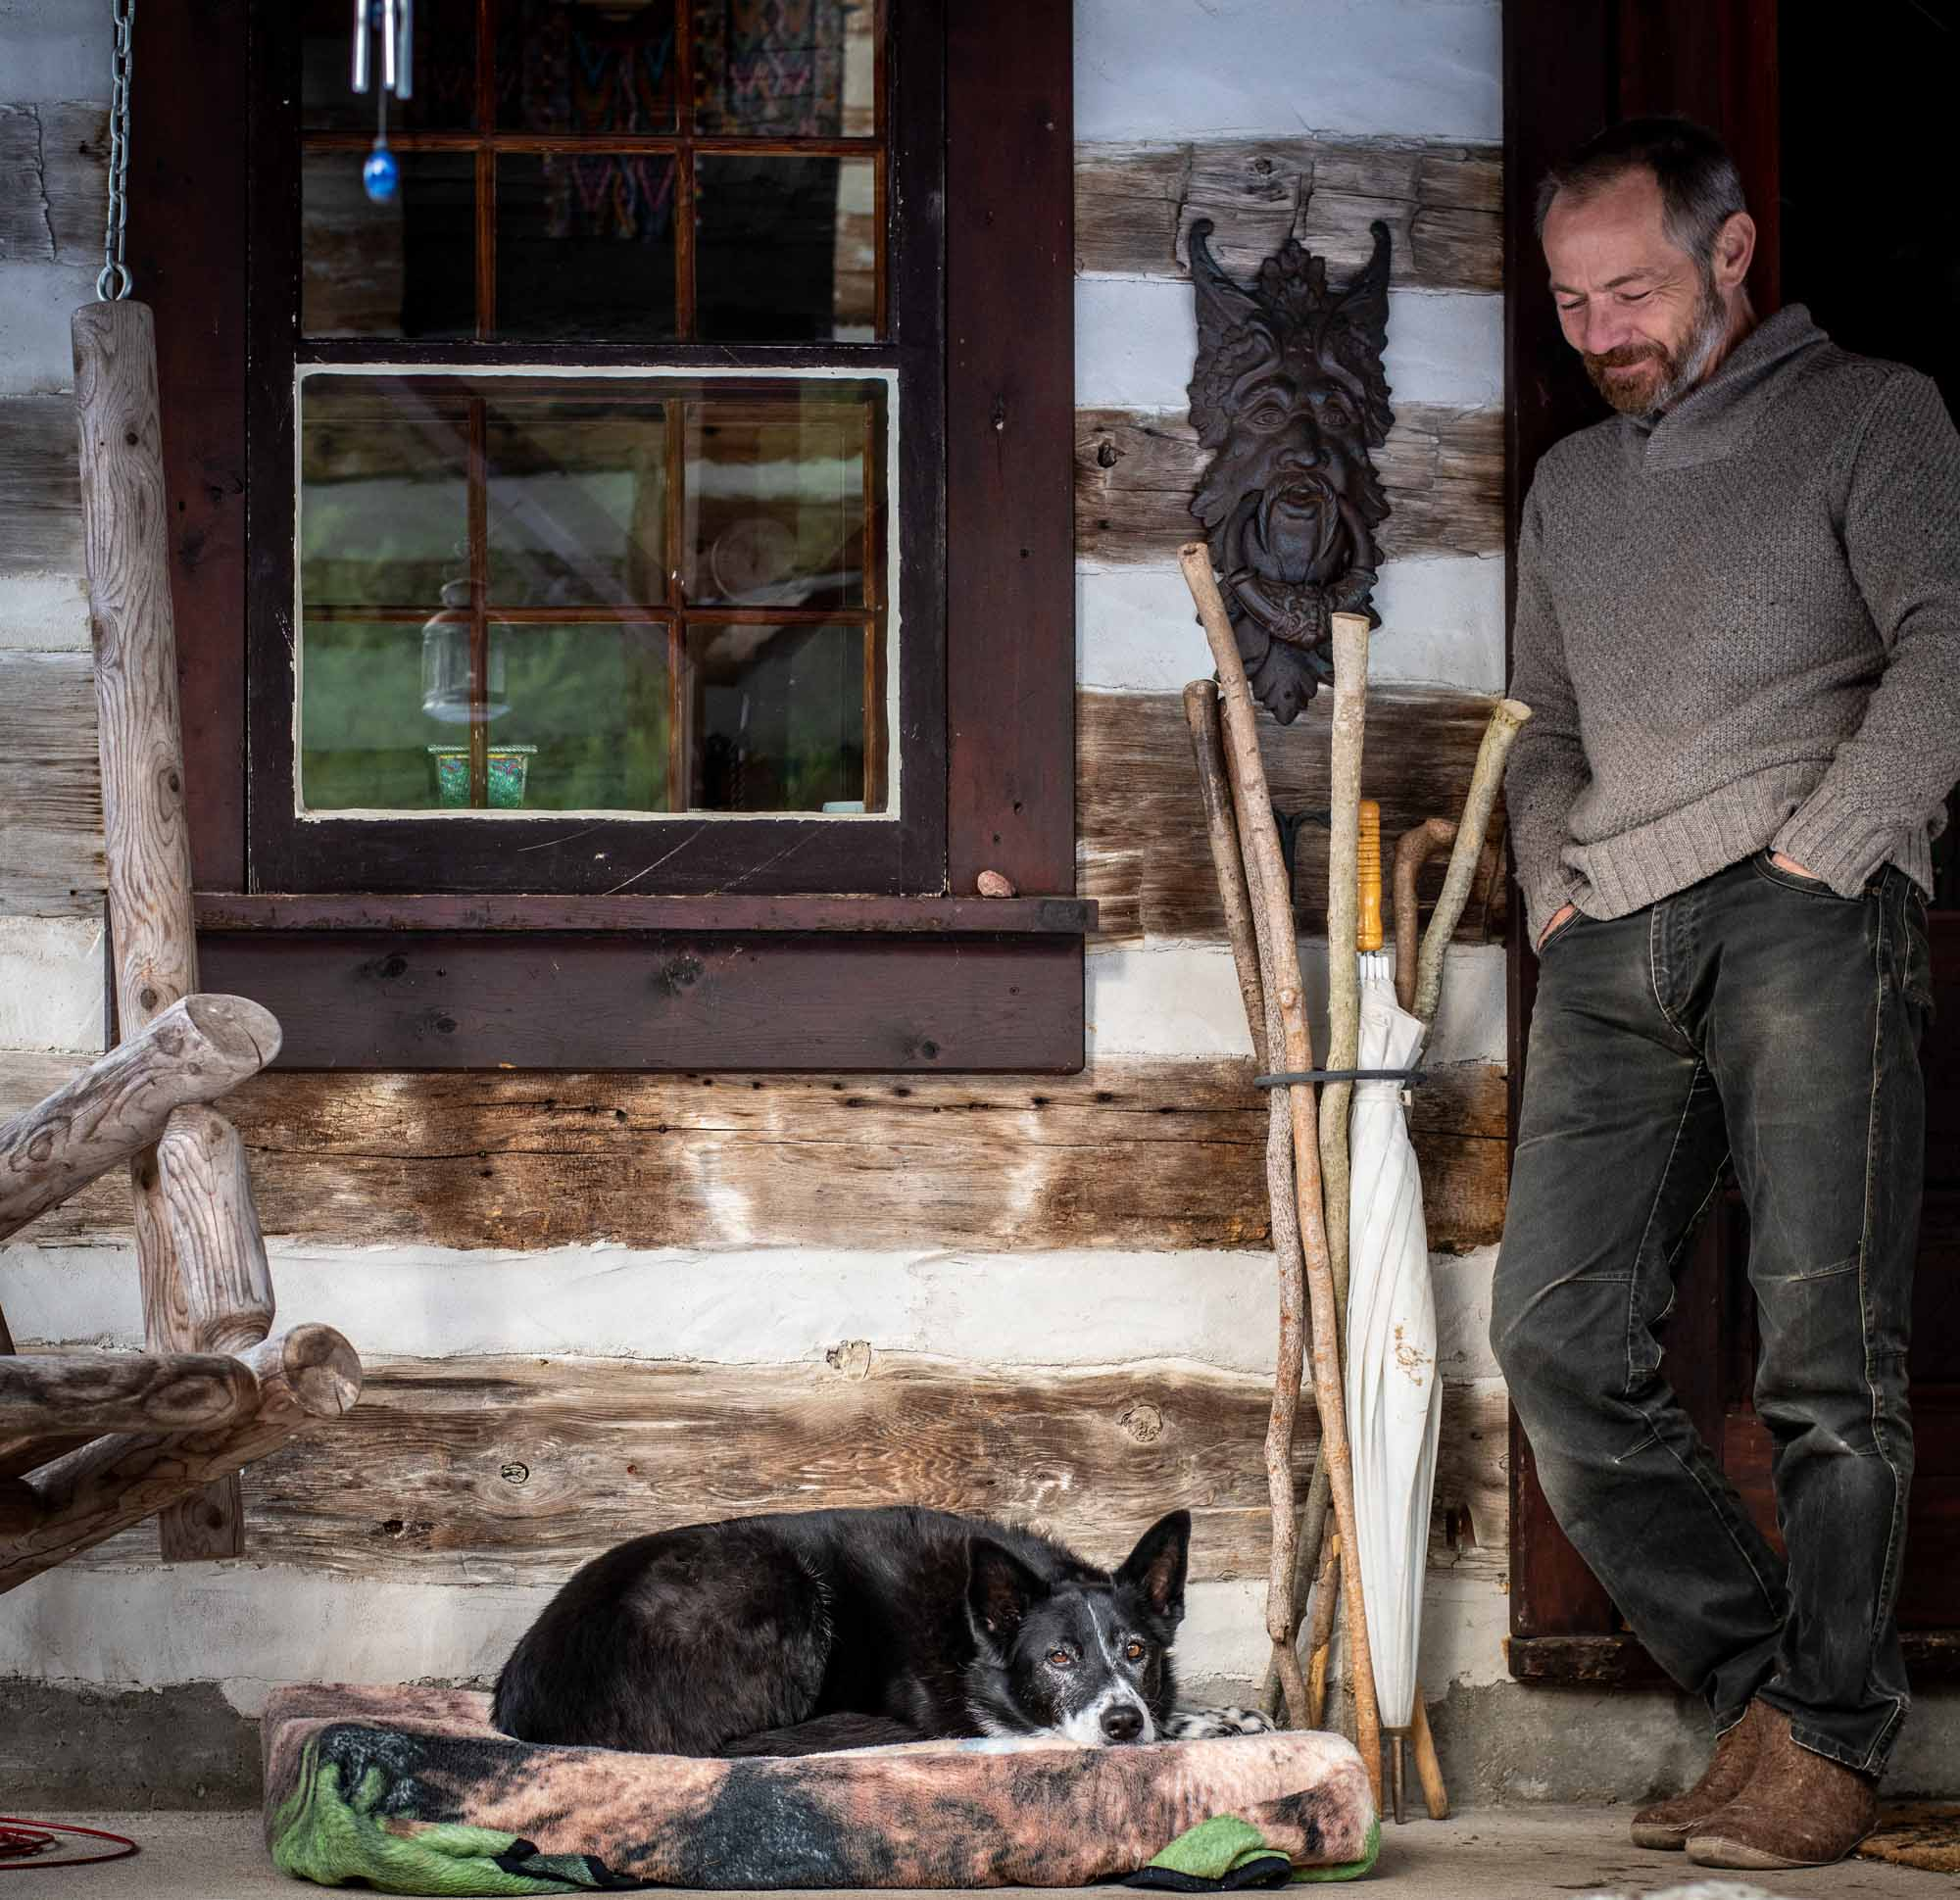 The-Cordwood-Cabin-An-Accessible-Retreat-from-the-21st-Century-Neil-Baldwin-standing-photo-by-Kristin-Schnelten